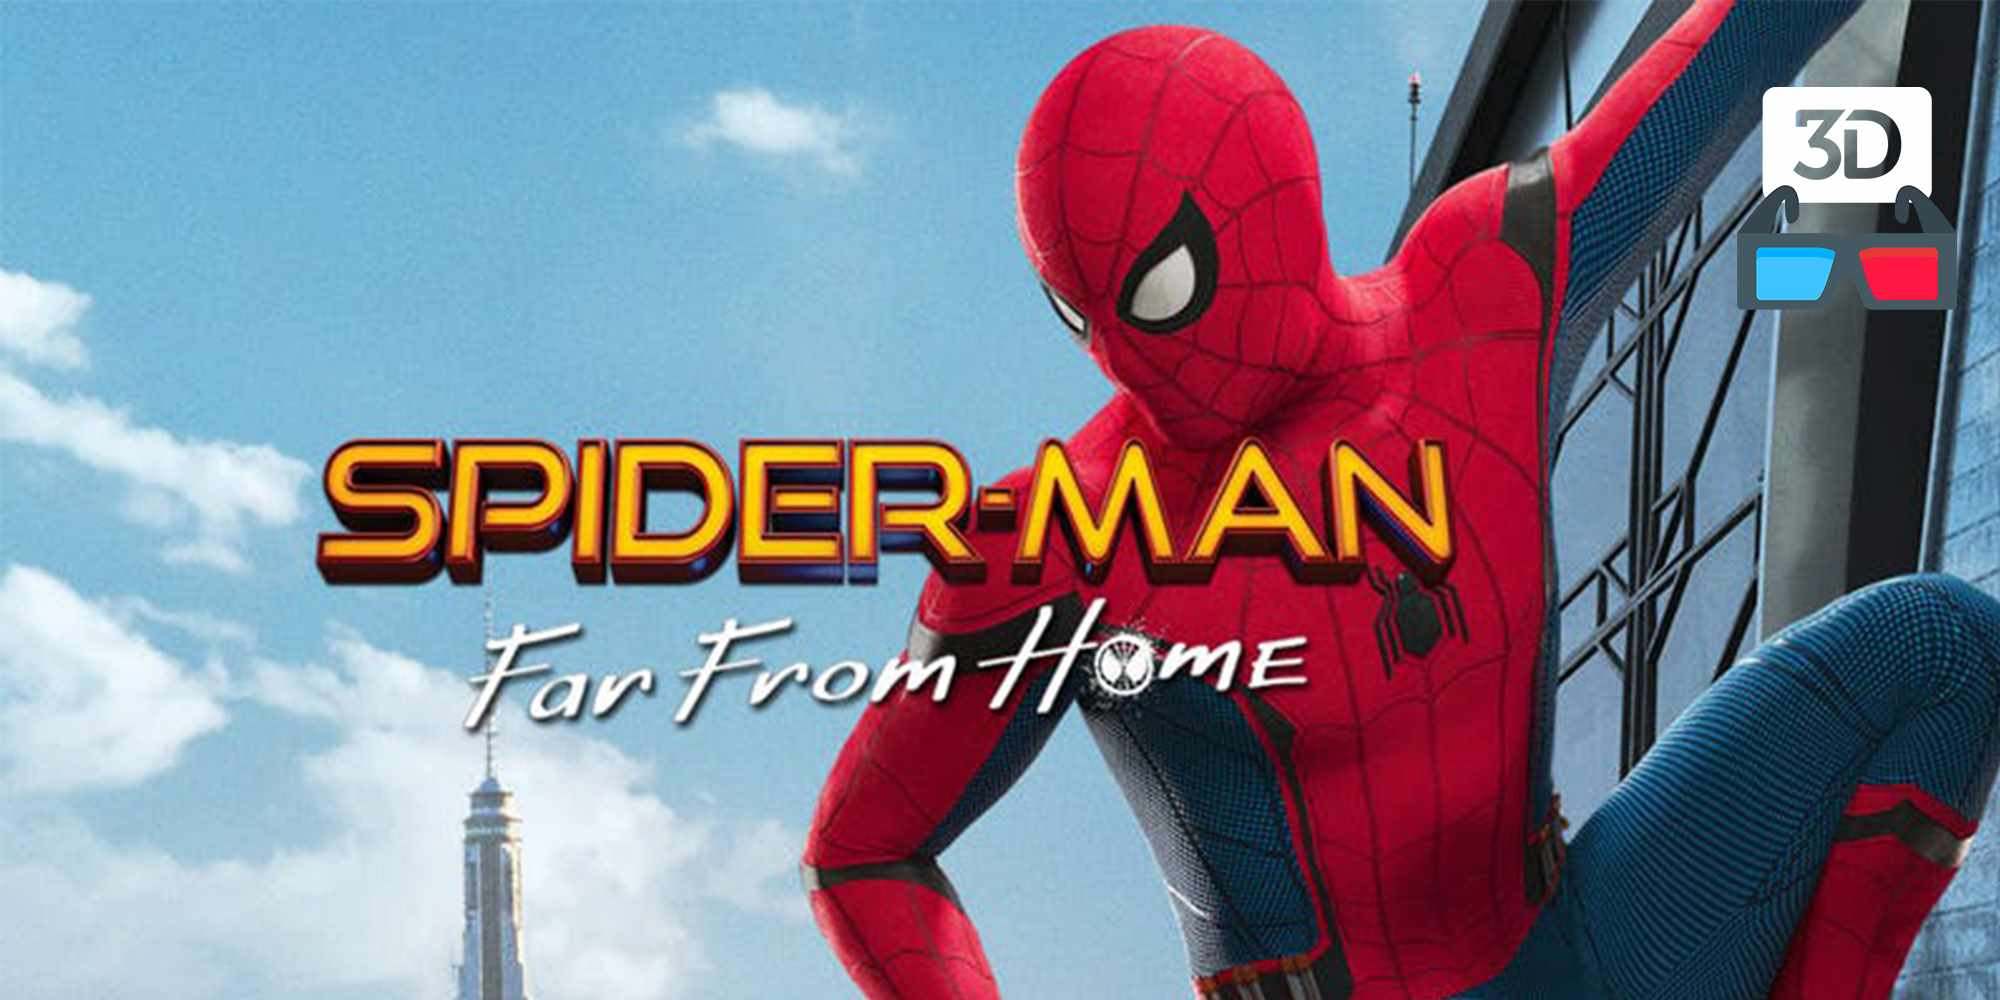 3D: Spider-Man: Far from Home